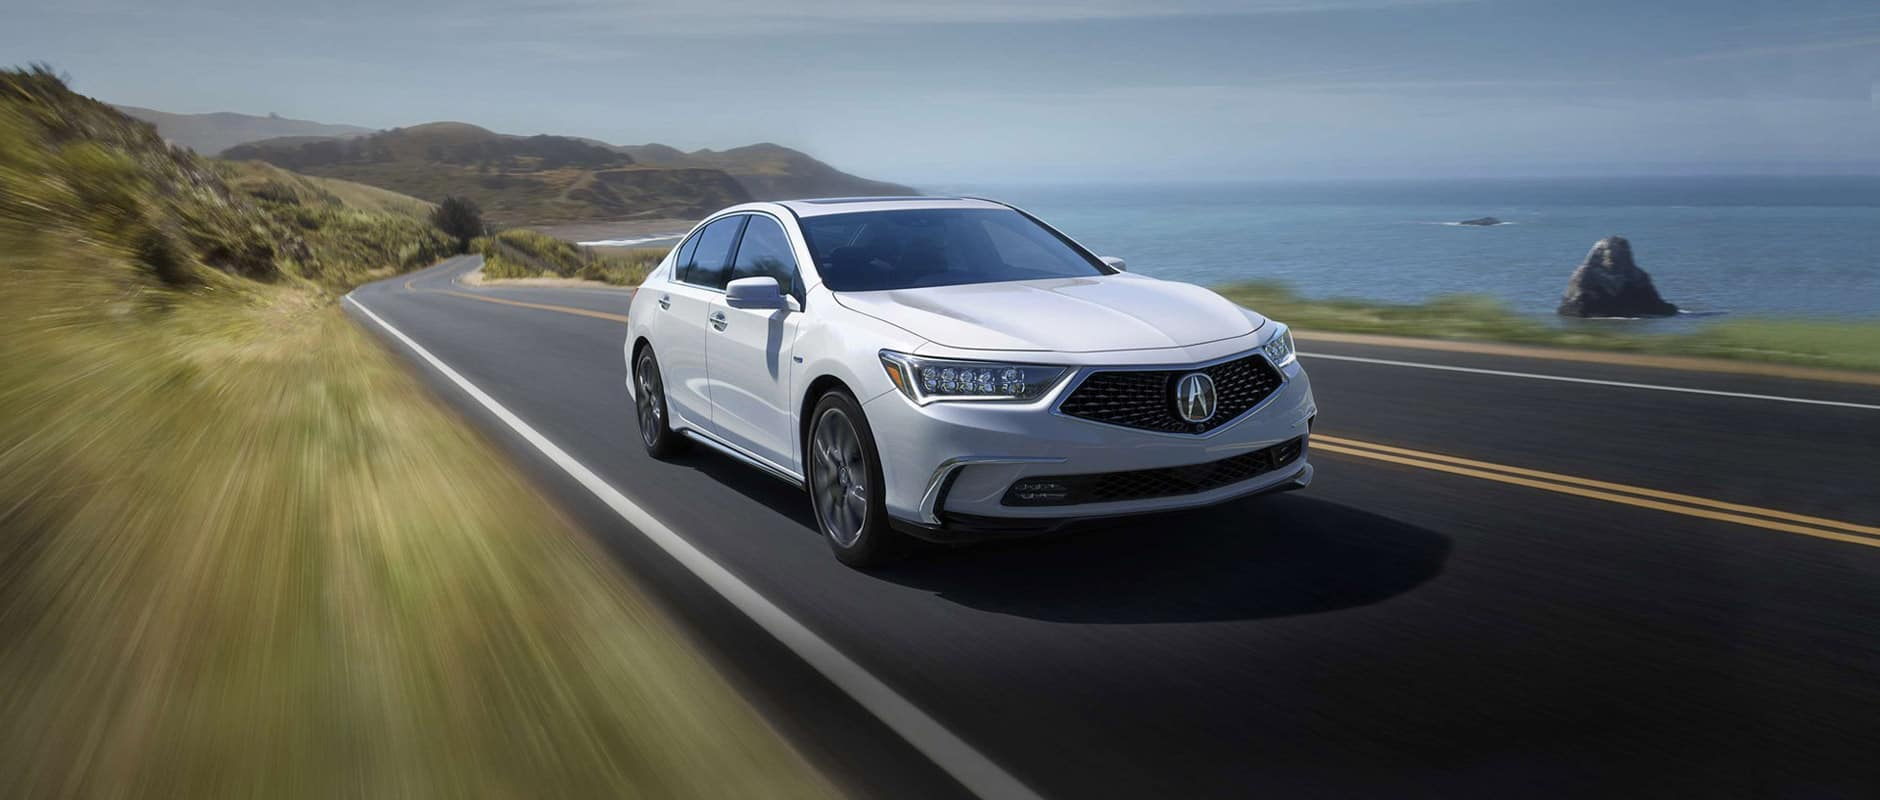 car tlx acura p new website specials lease leasing aws springfield dct